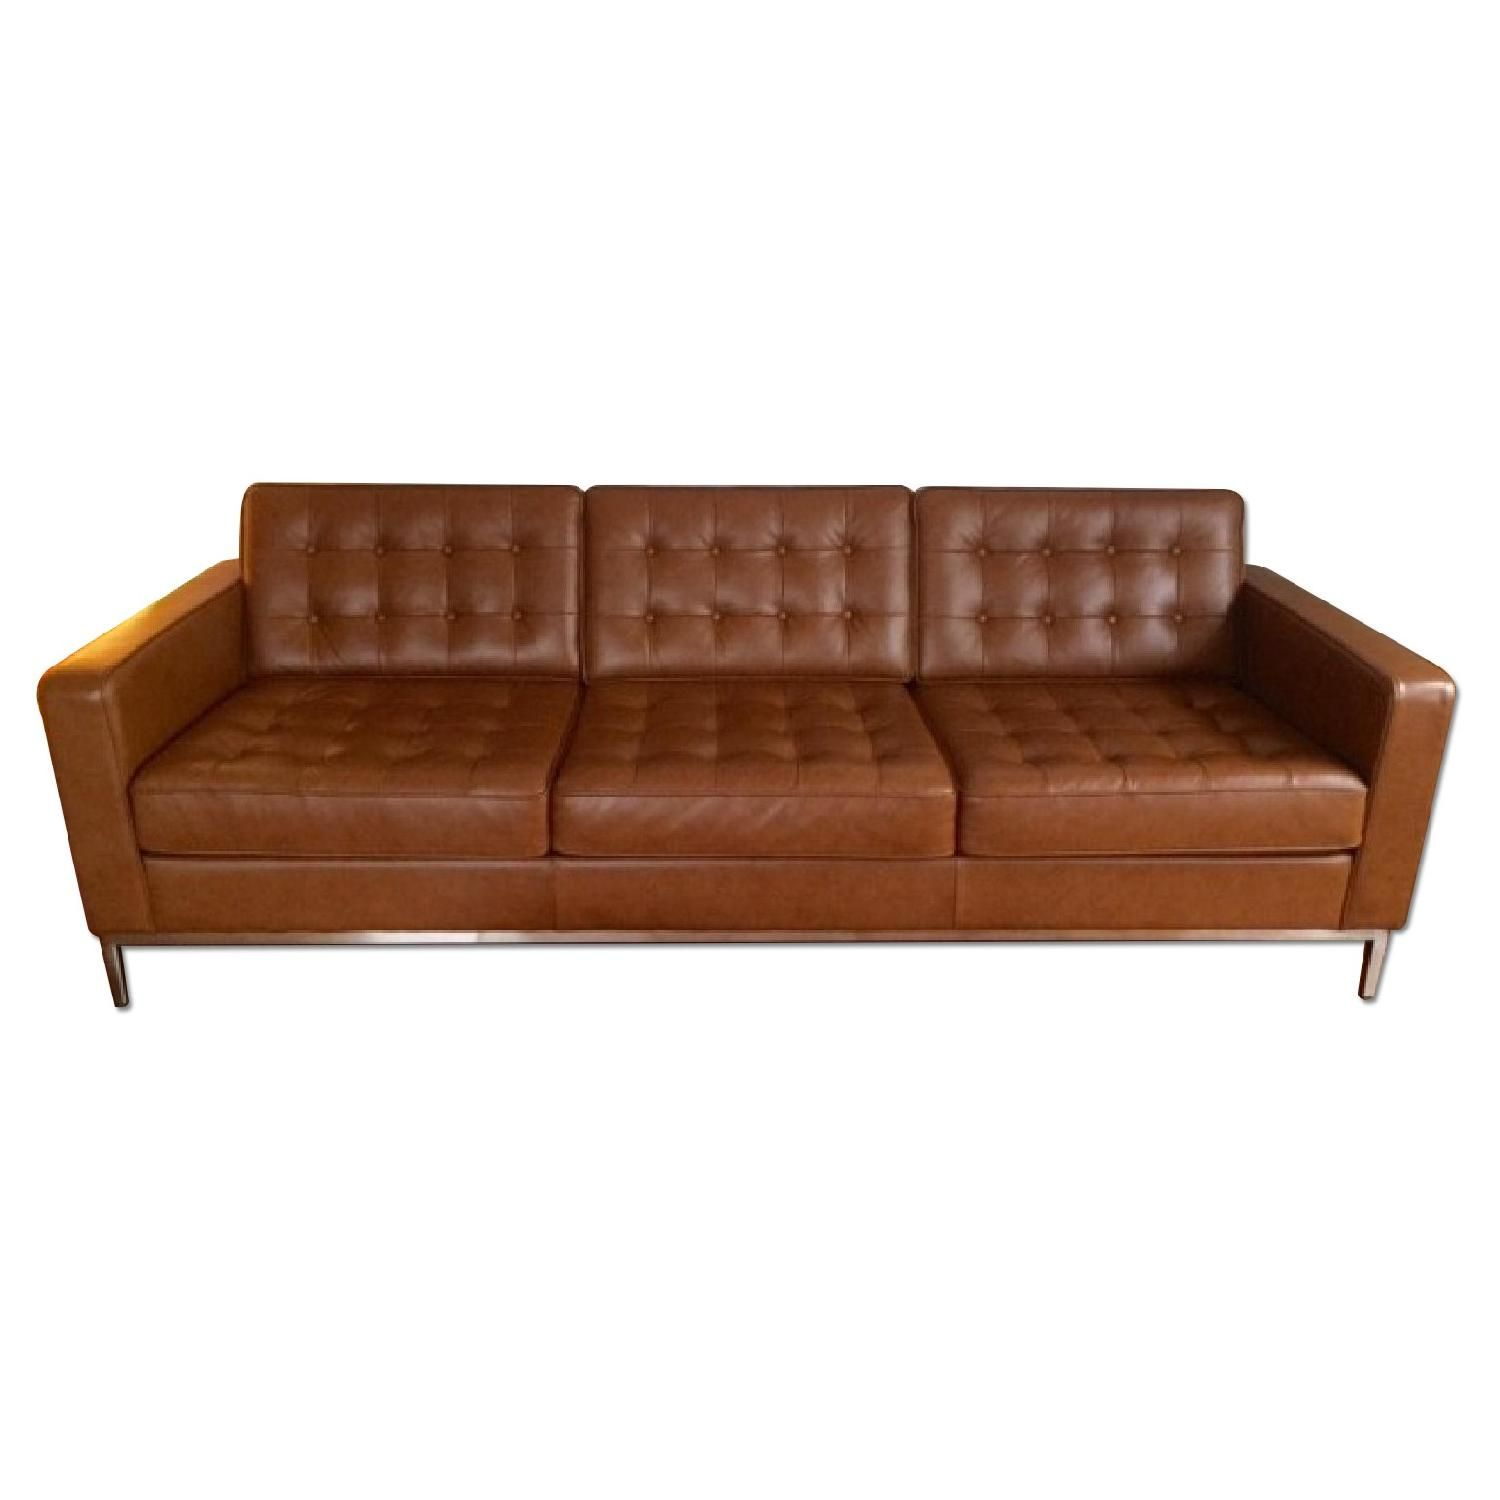 Eq3 Brown Leather Couch Brown Leather Couch Leather Couch Couch